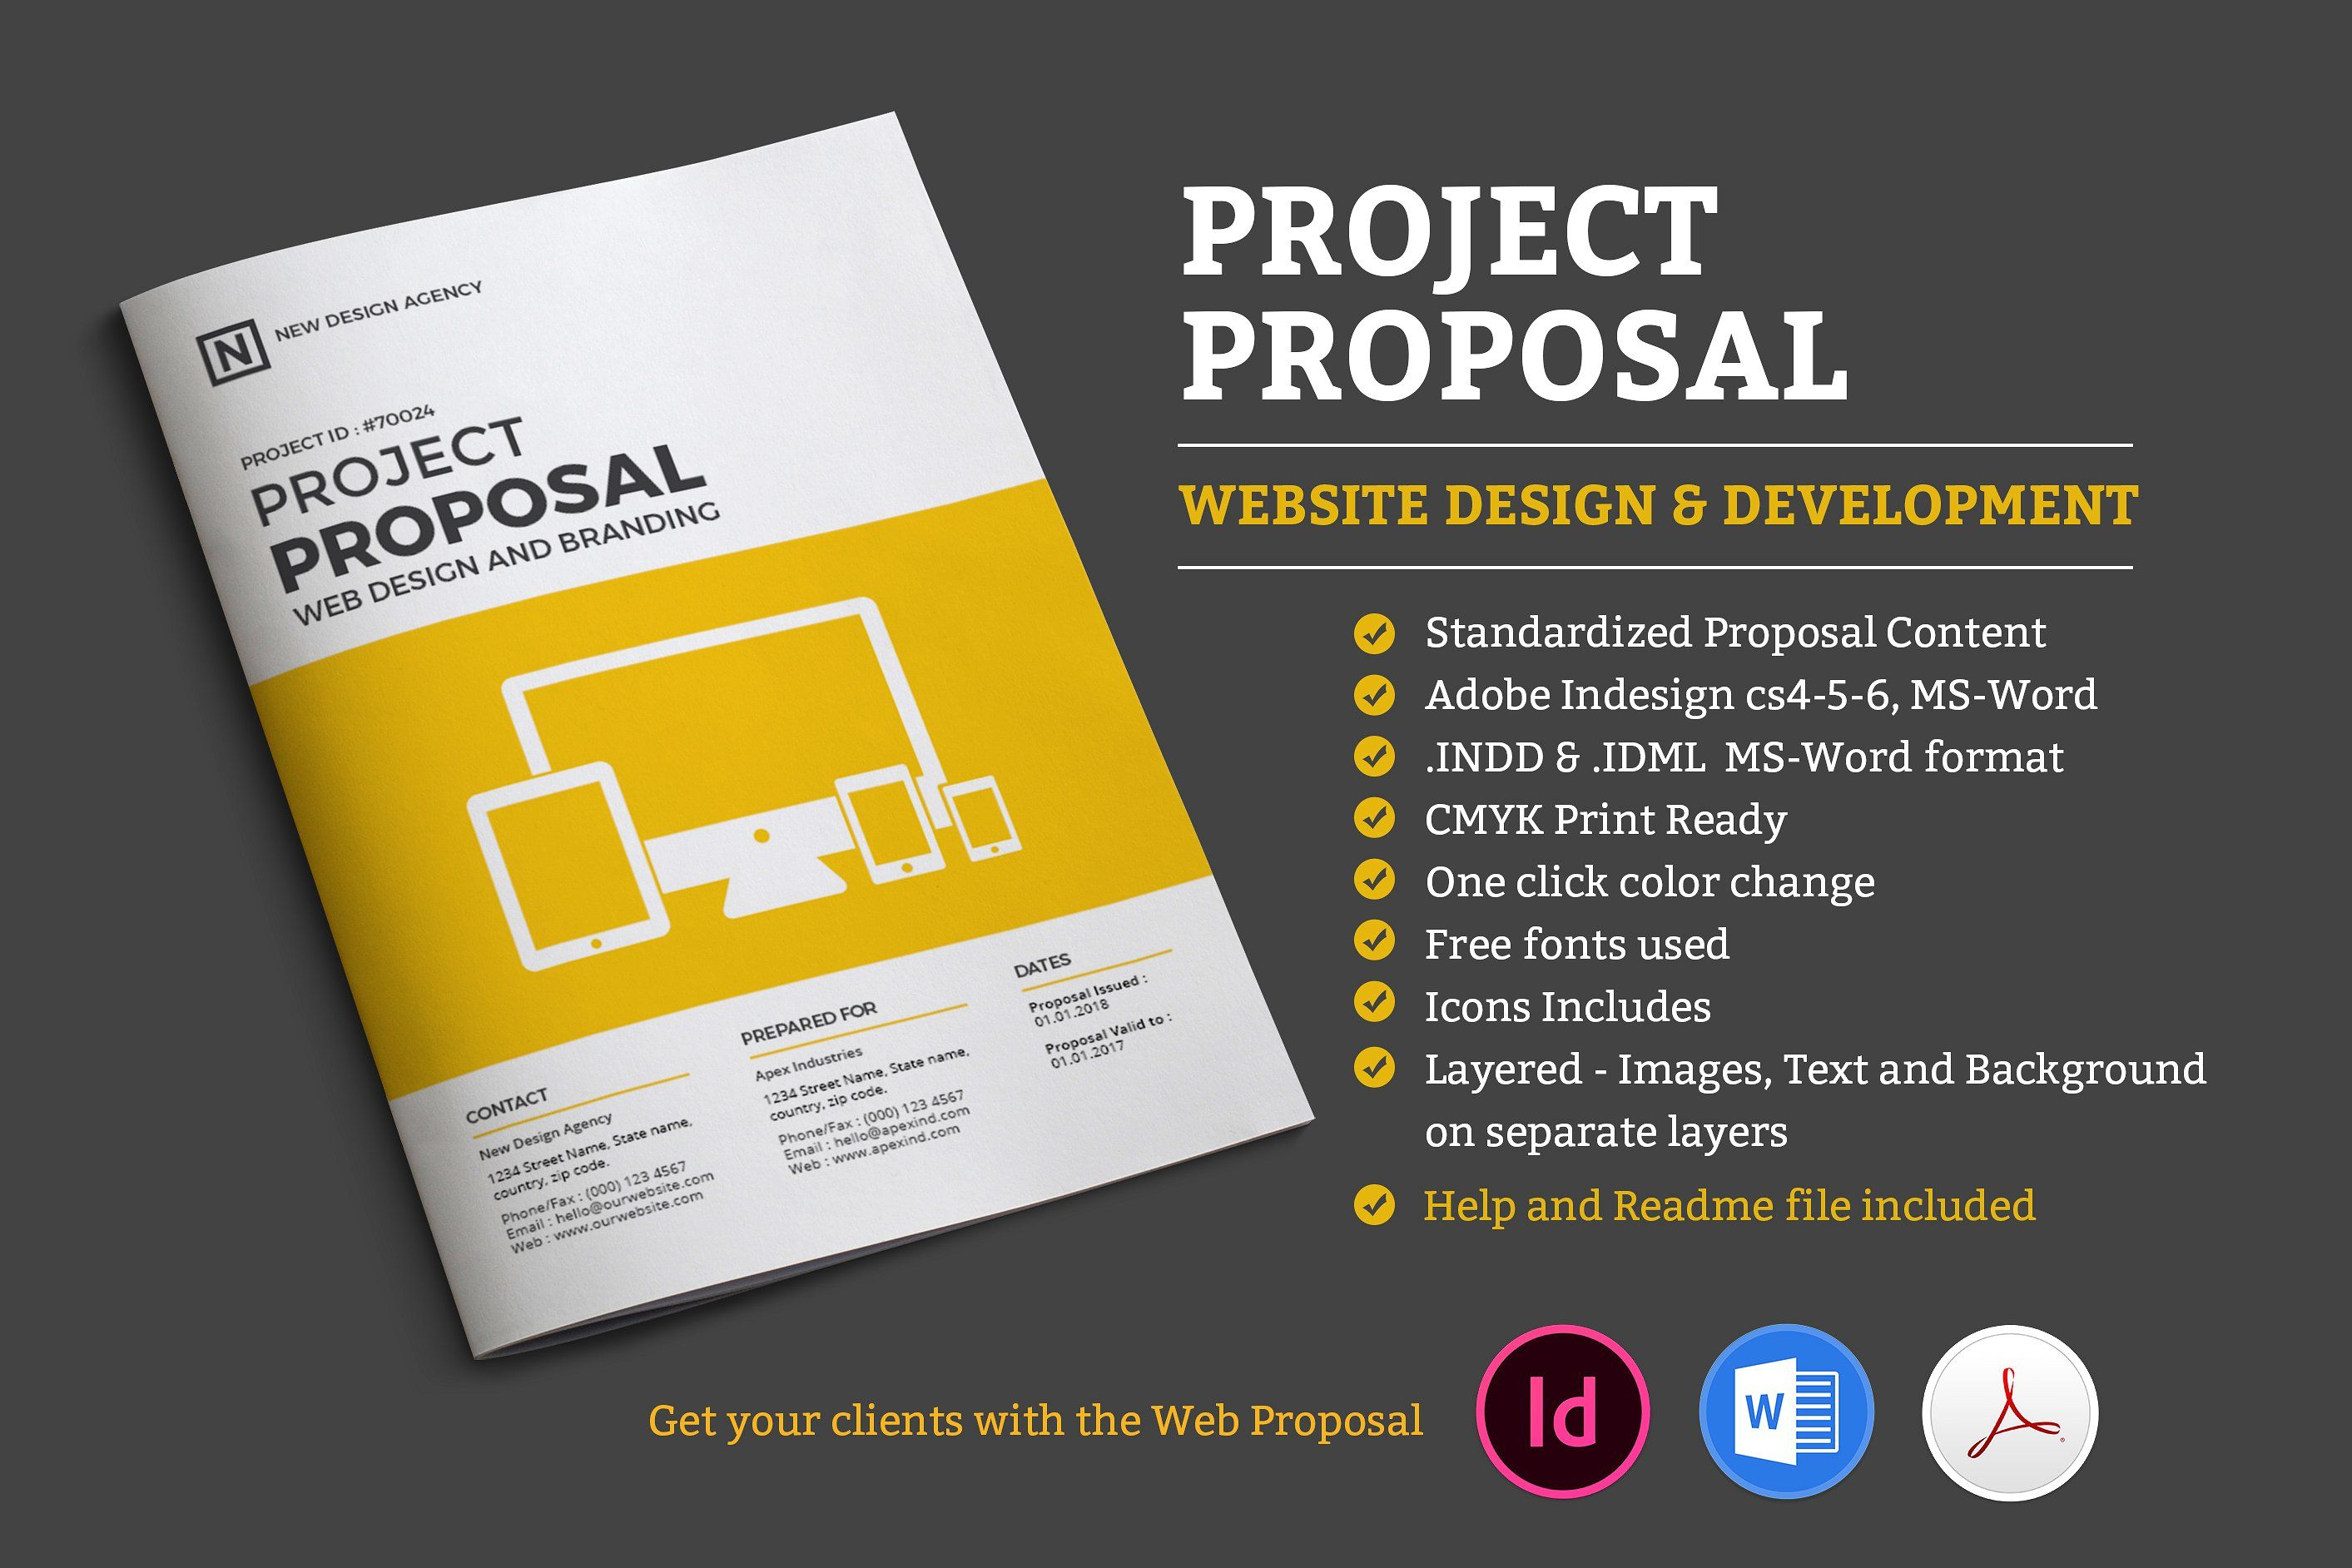 Pin By Adil Sultan On Adil Sultan Pinterest Project Proposal